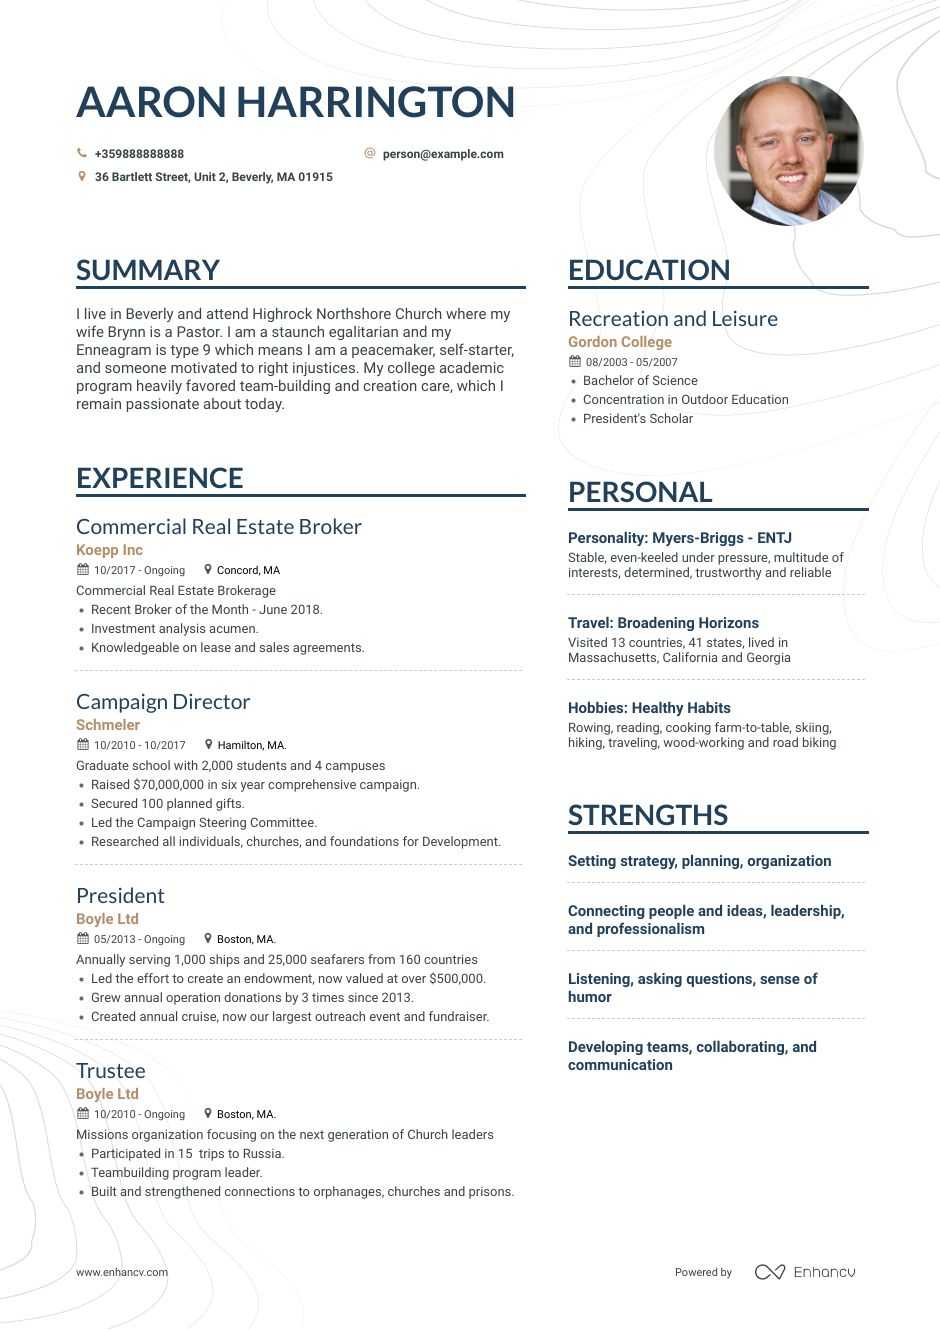 estate resume examples and skills you need to get hired box objective for first time job Resume Real Estate Resume Skills